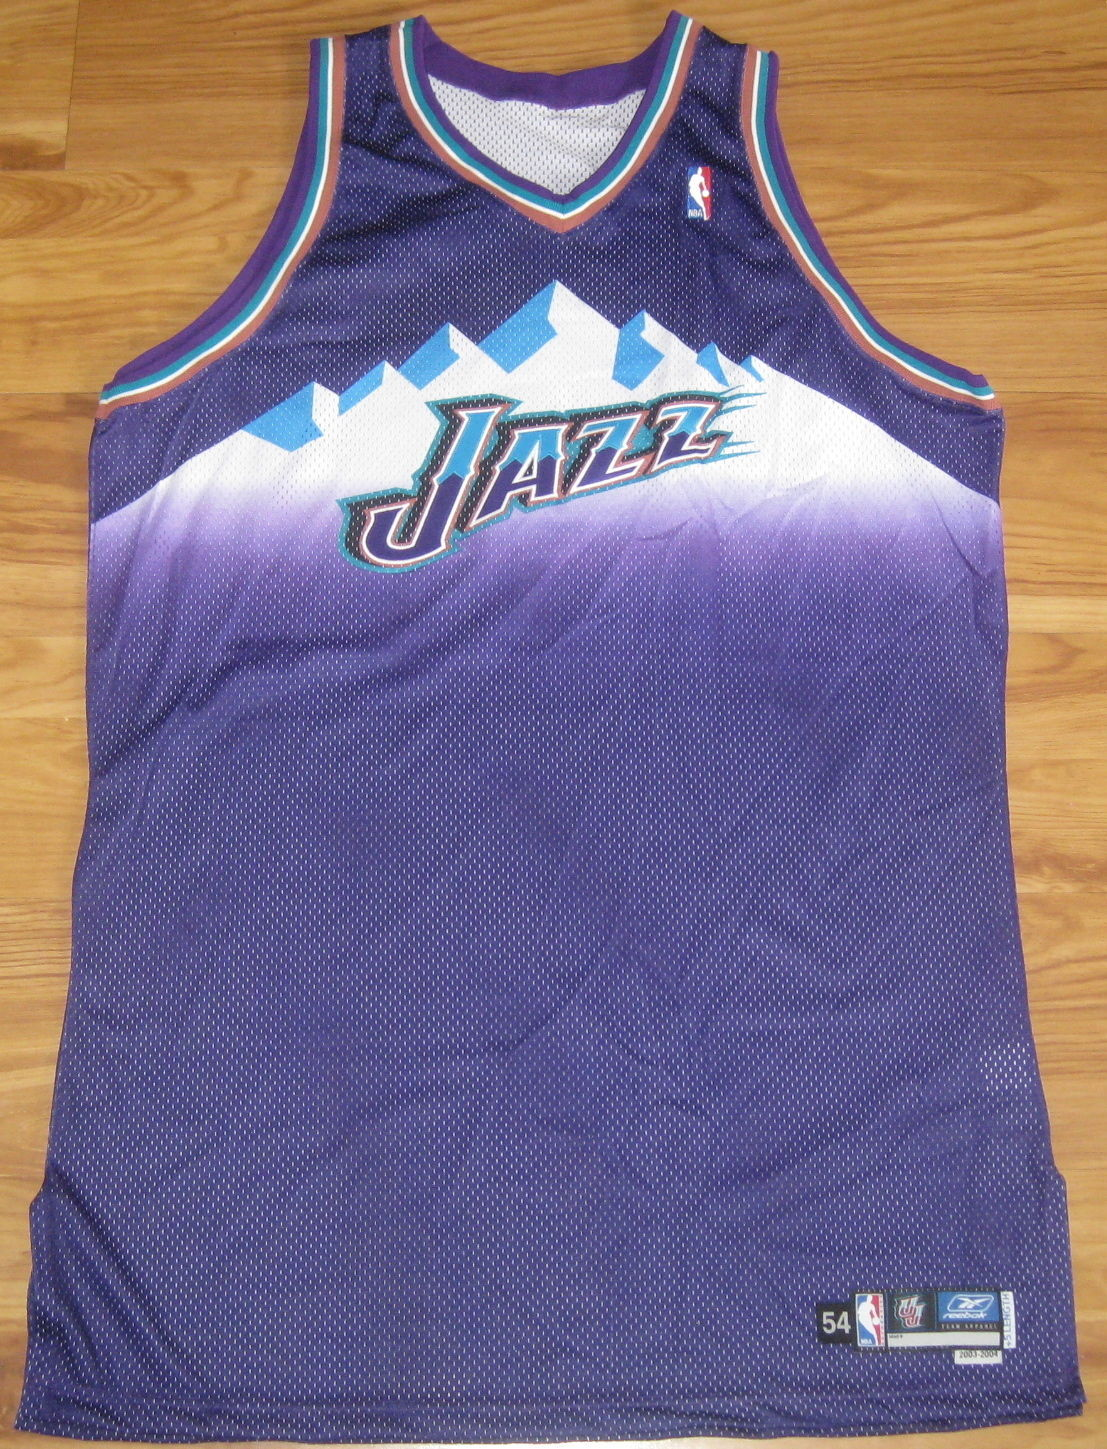 4d678a7bc46 Utah Jazz Authentic Reebok Jersey 54 +5 and 50 similar items. S l1600